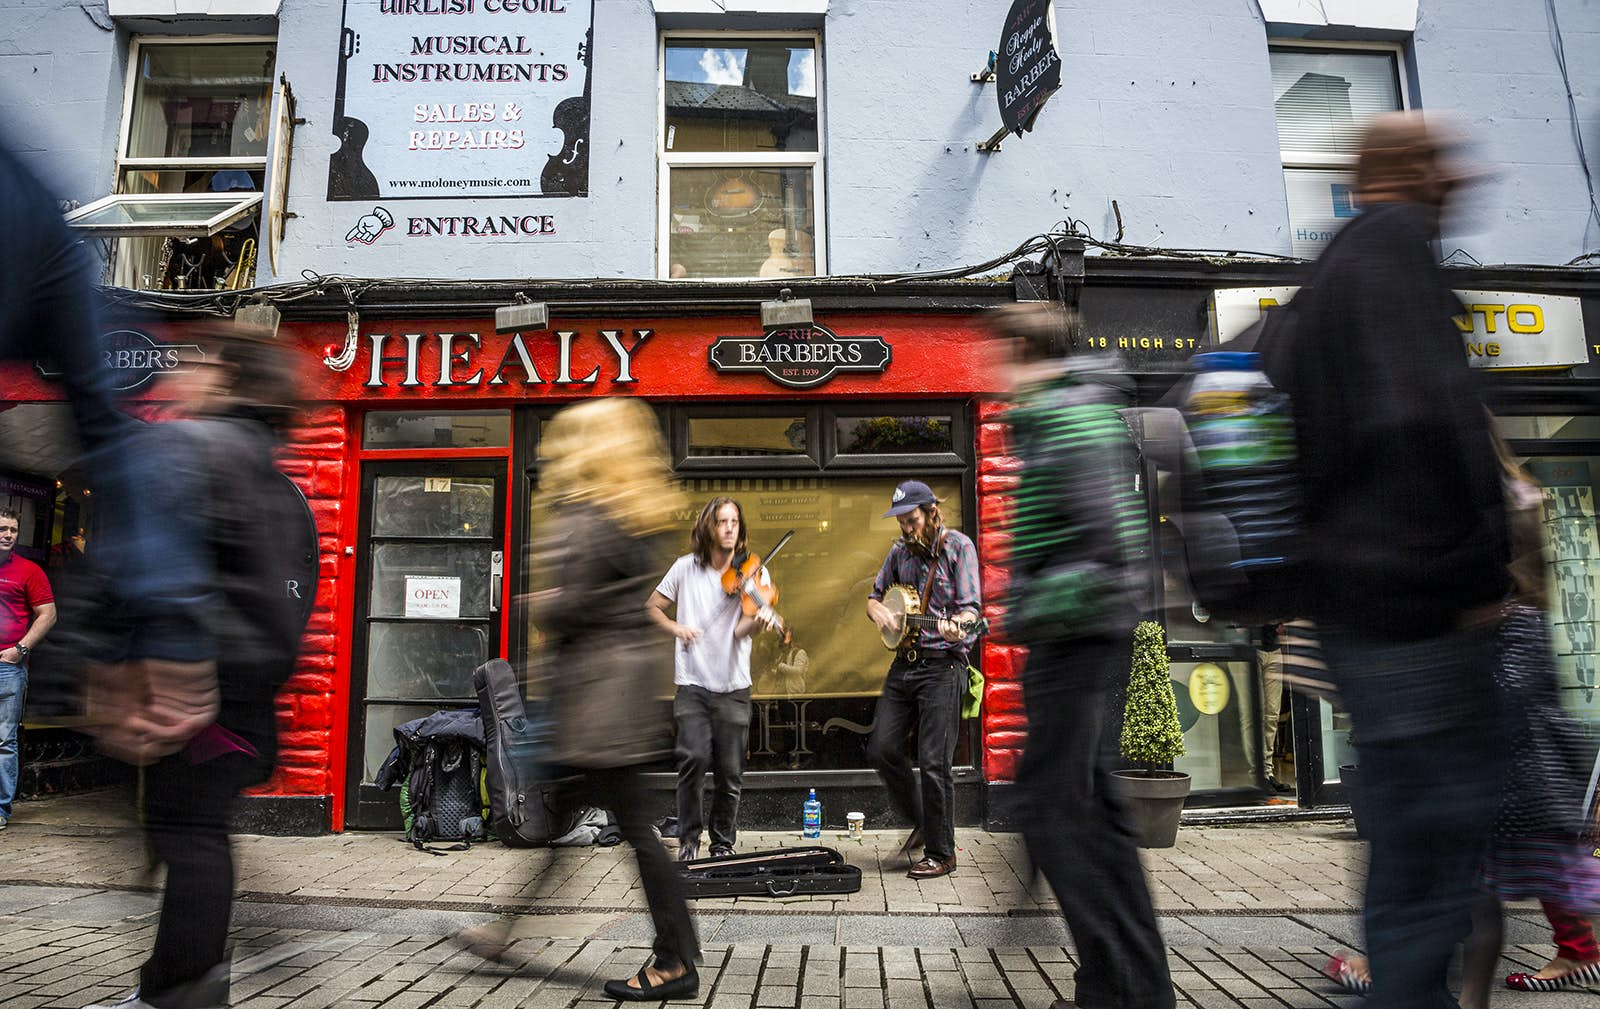 PERFECT DATE NIGHT SPOTS IN GALWAY - This is Galway